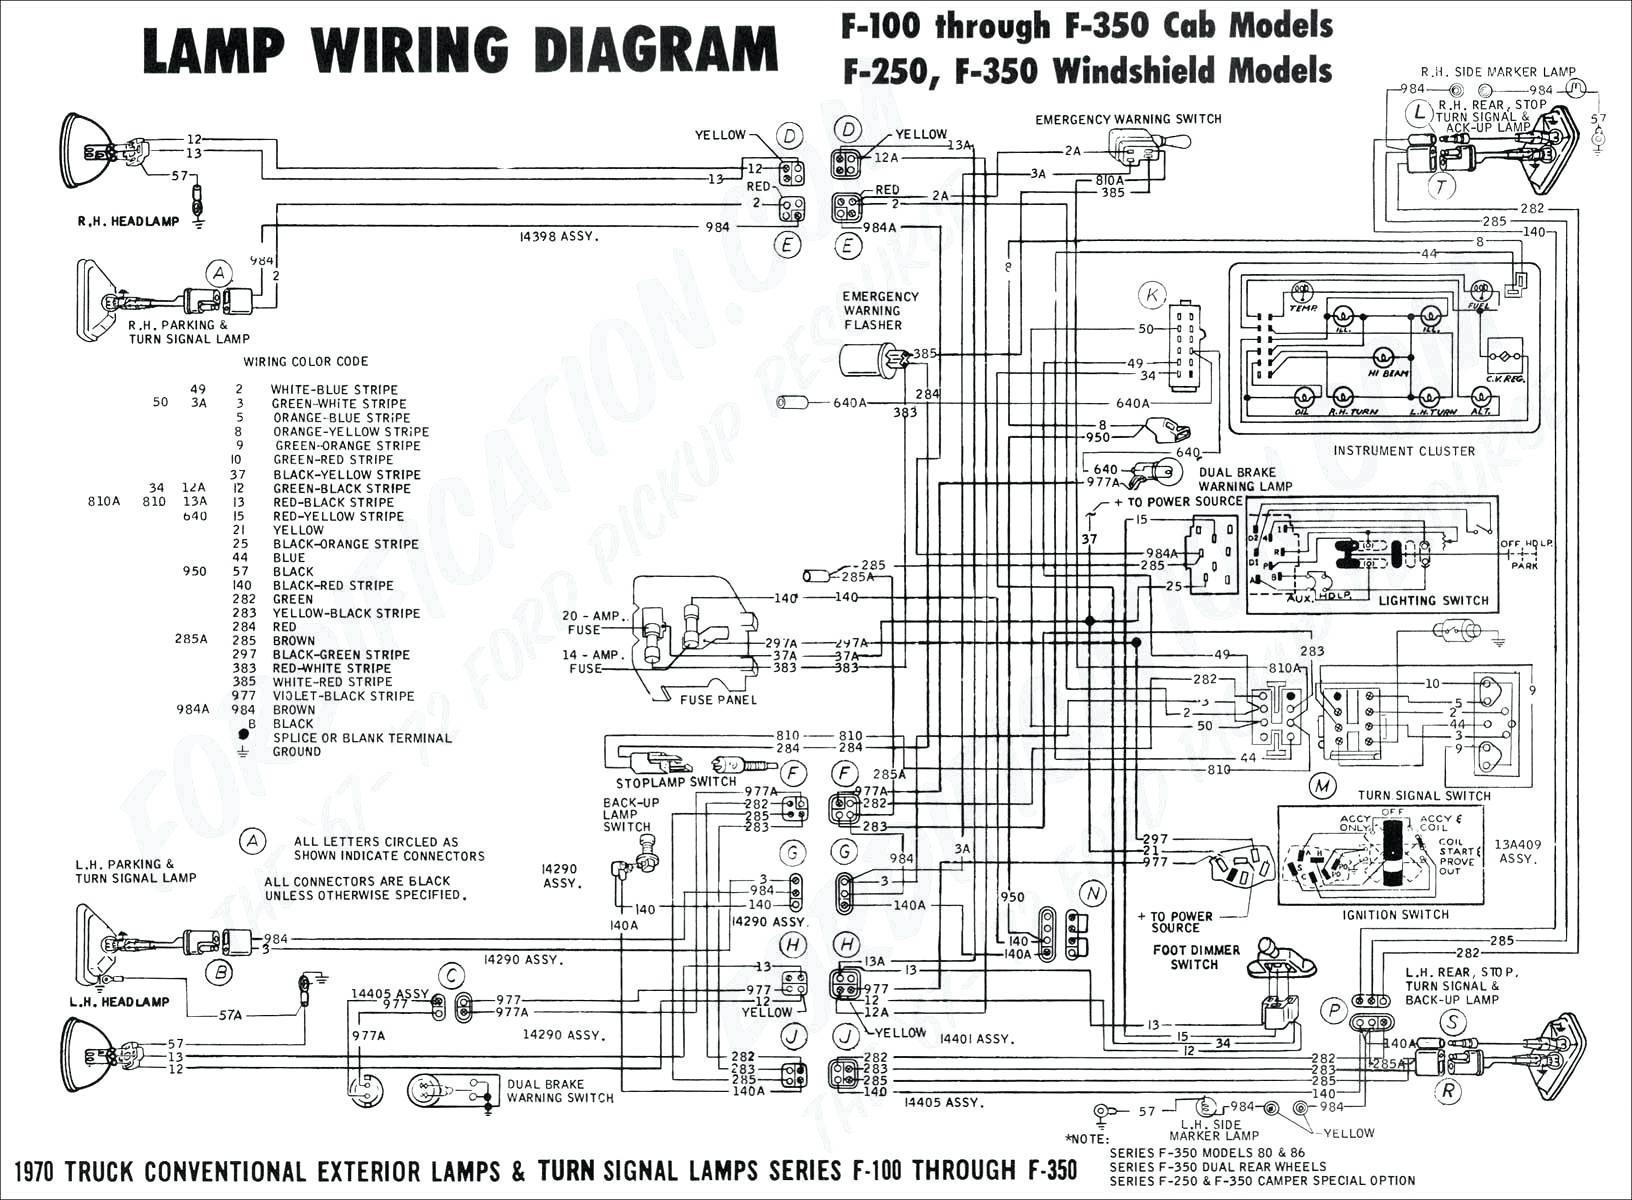 Infiniti Qx4 Engine Diagram Mitsubishi Chariot Wiring Diagram Worksheet and Wiring Diagram • Of Infiniti Qx4 Engine Diagram